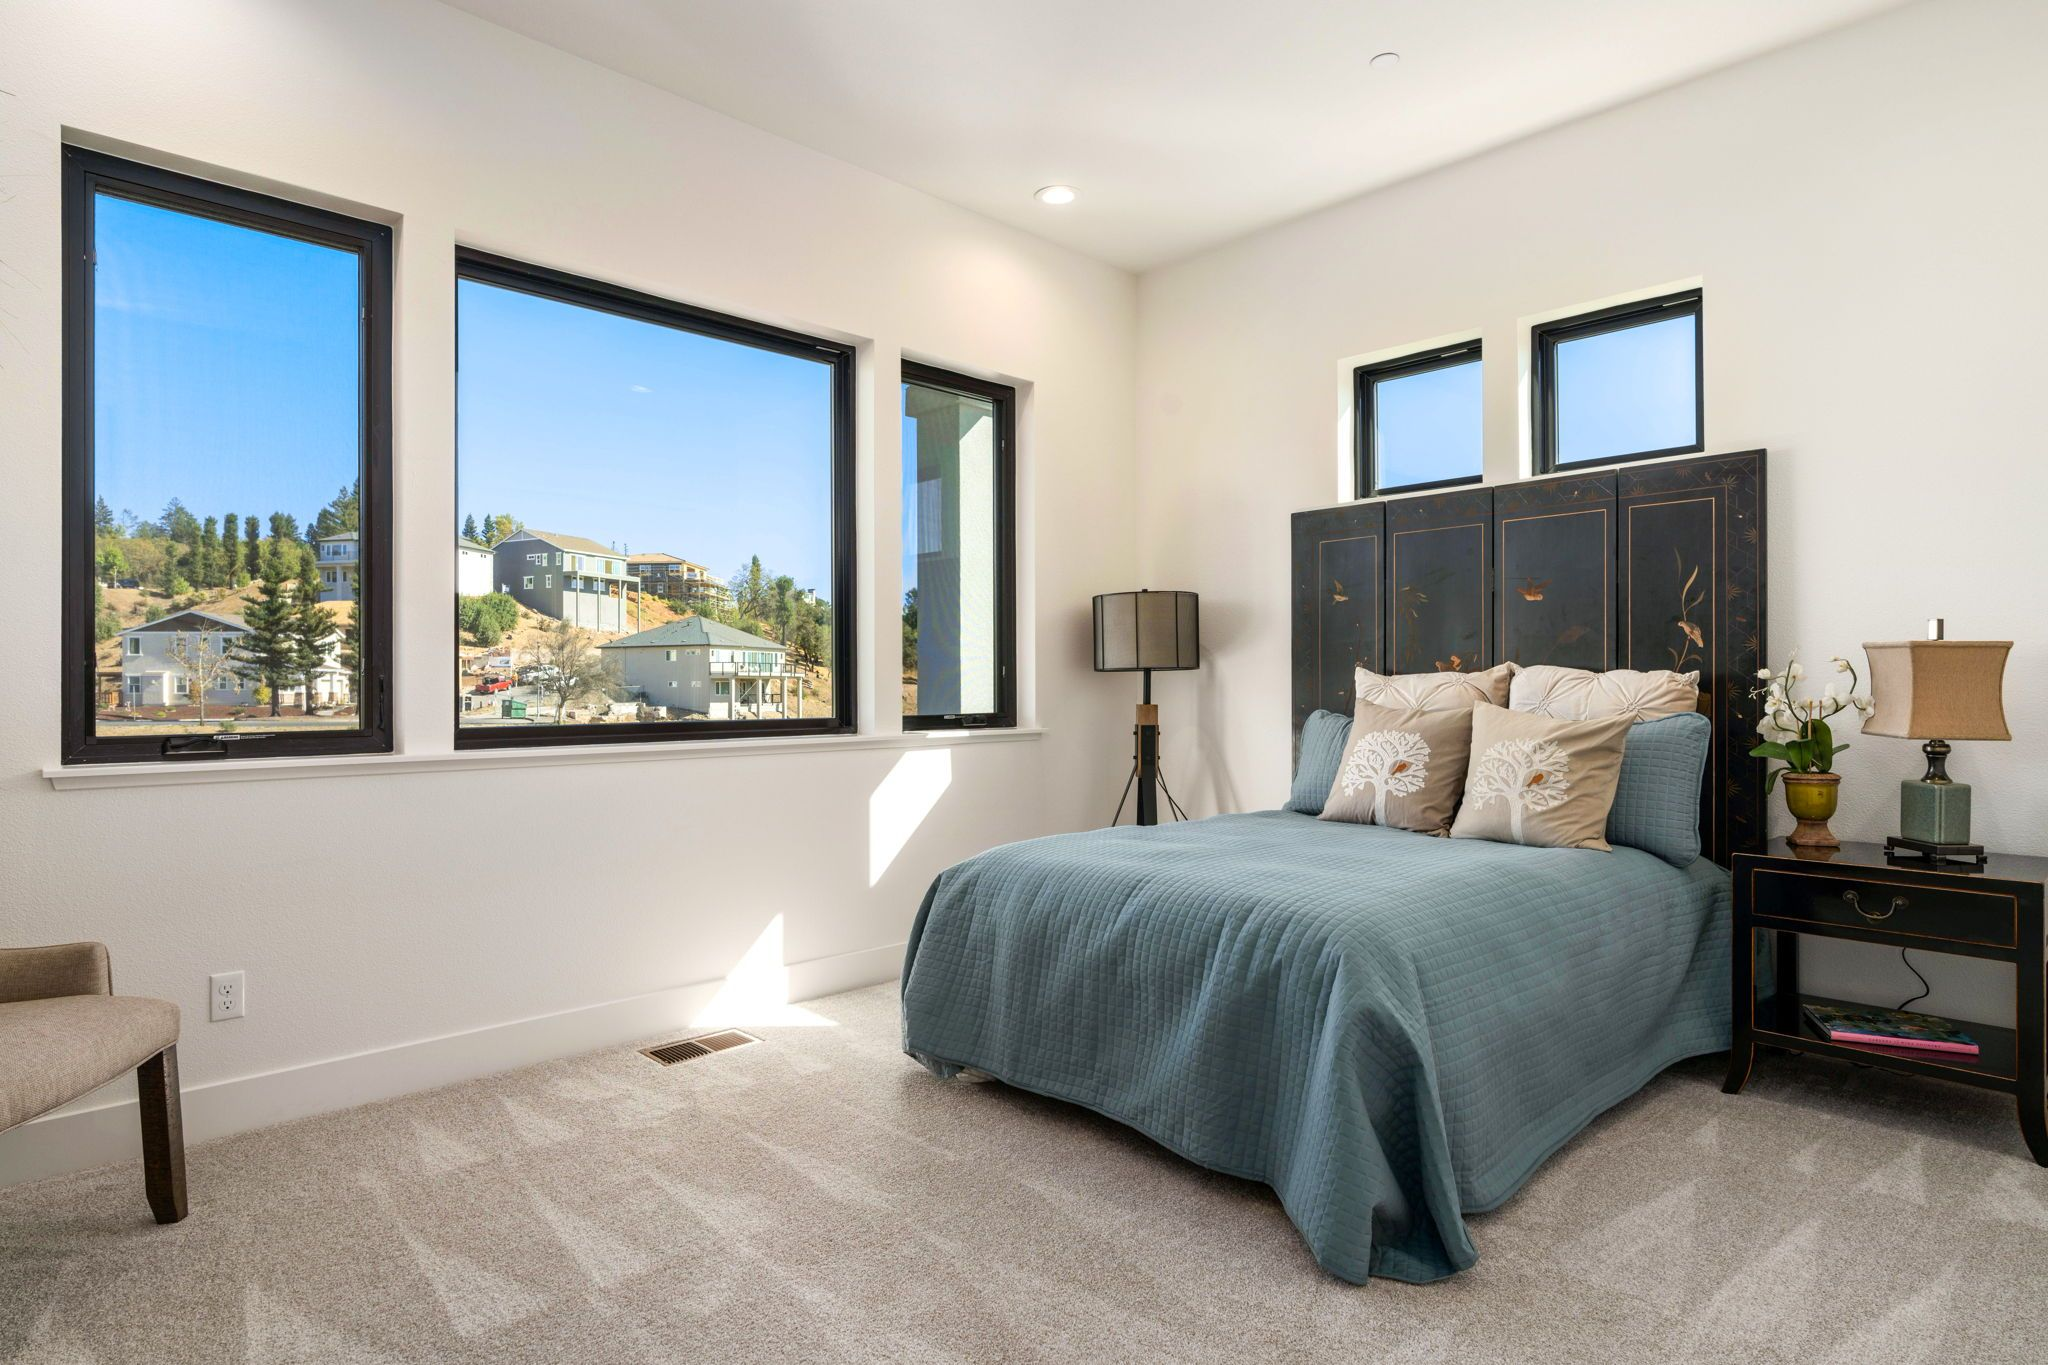 Bedroom featured in the Plan 29X By Christopherson Builders in Santa Rosa, CA